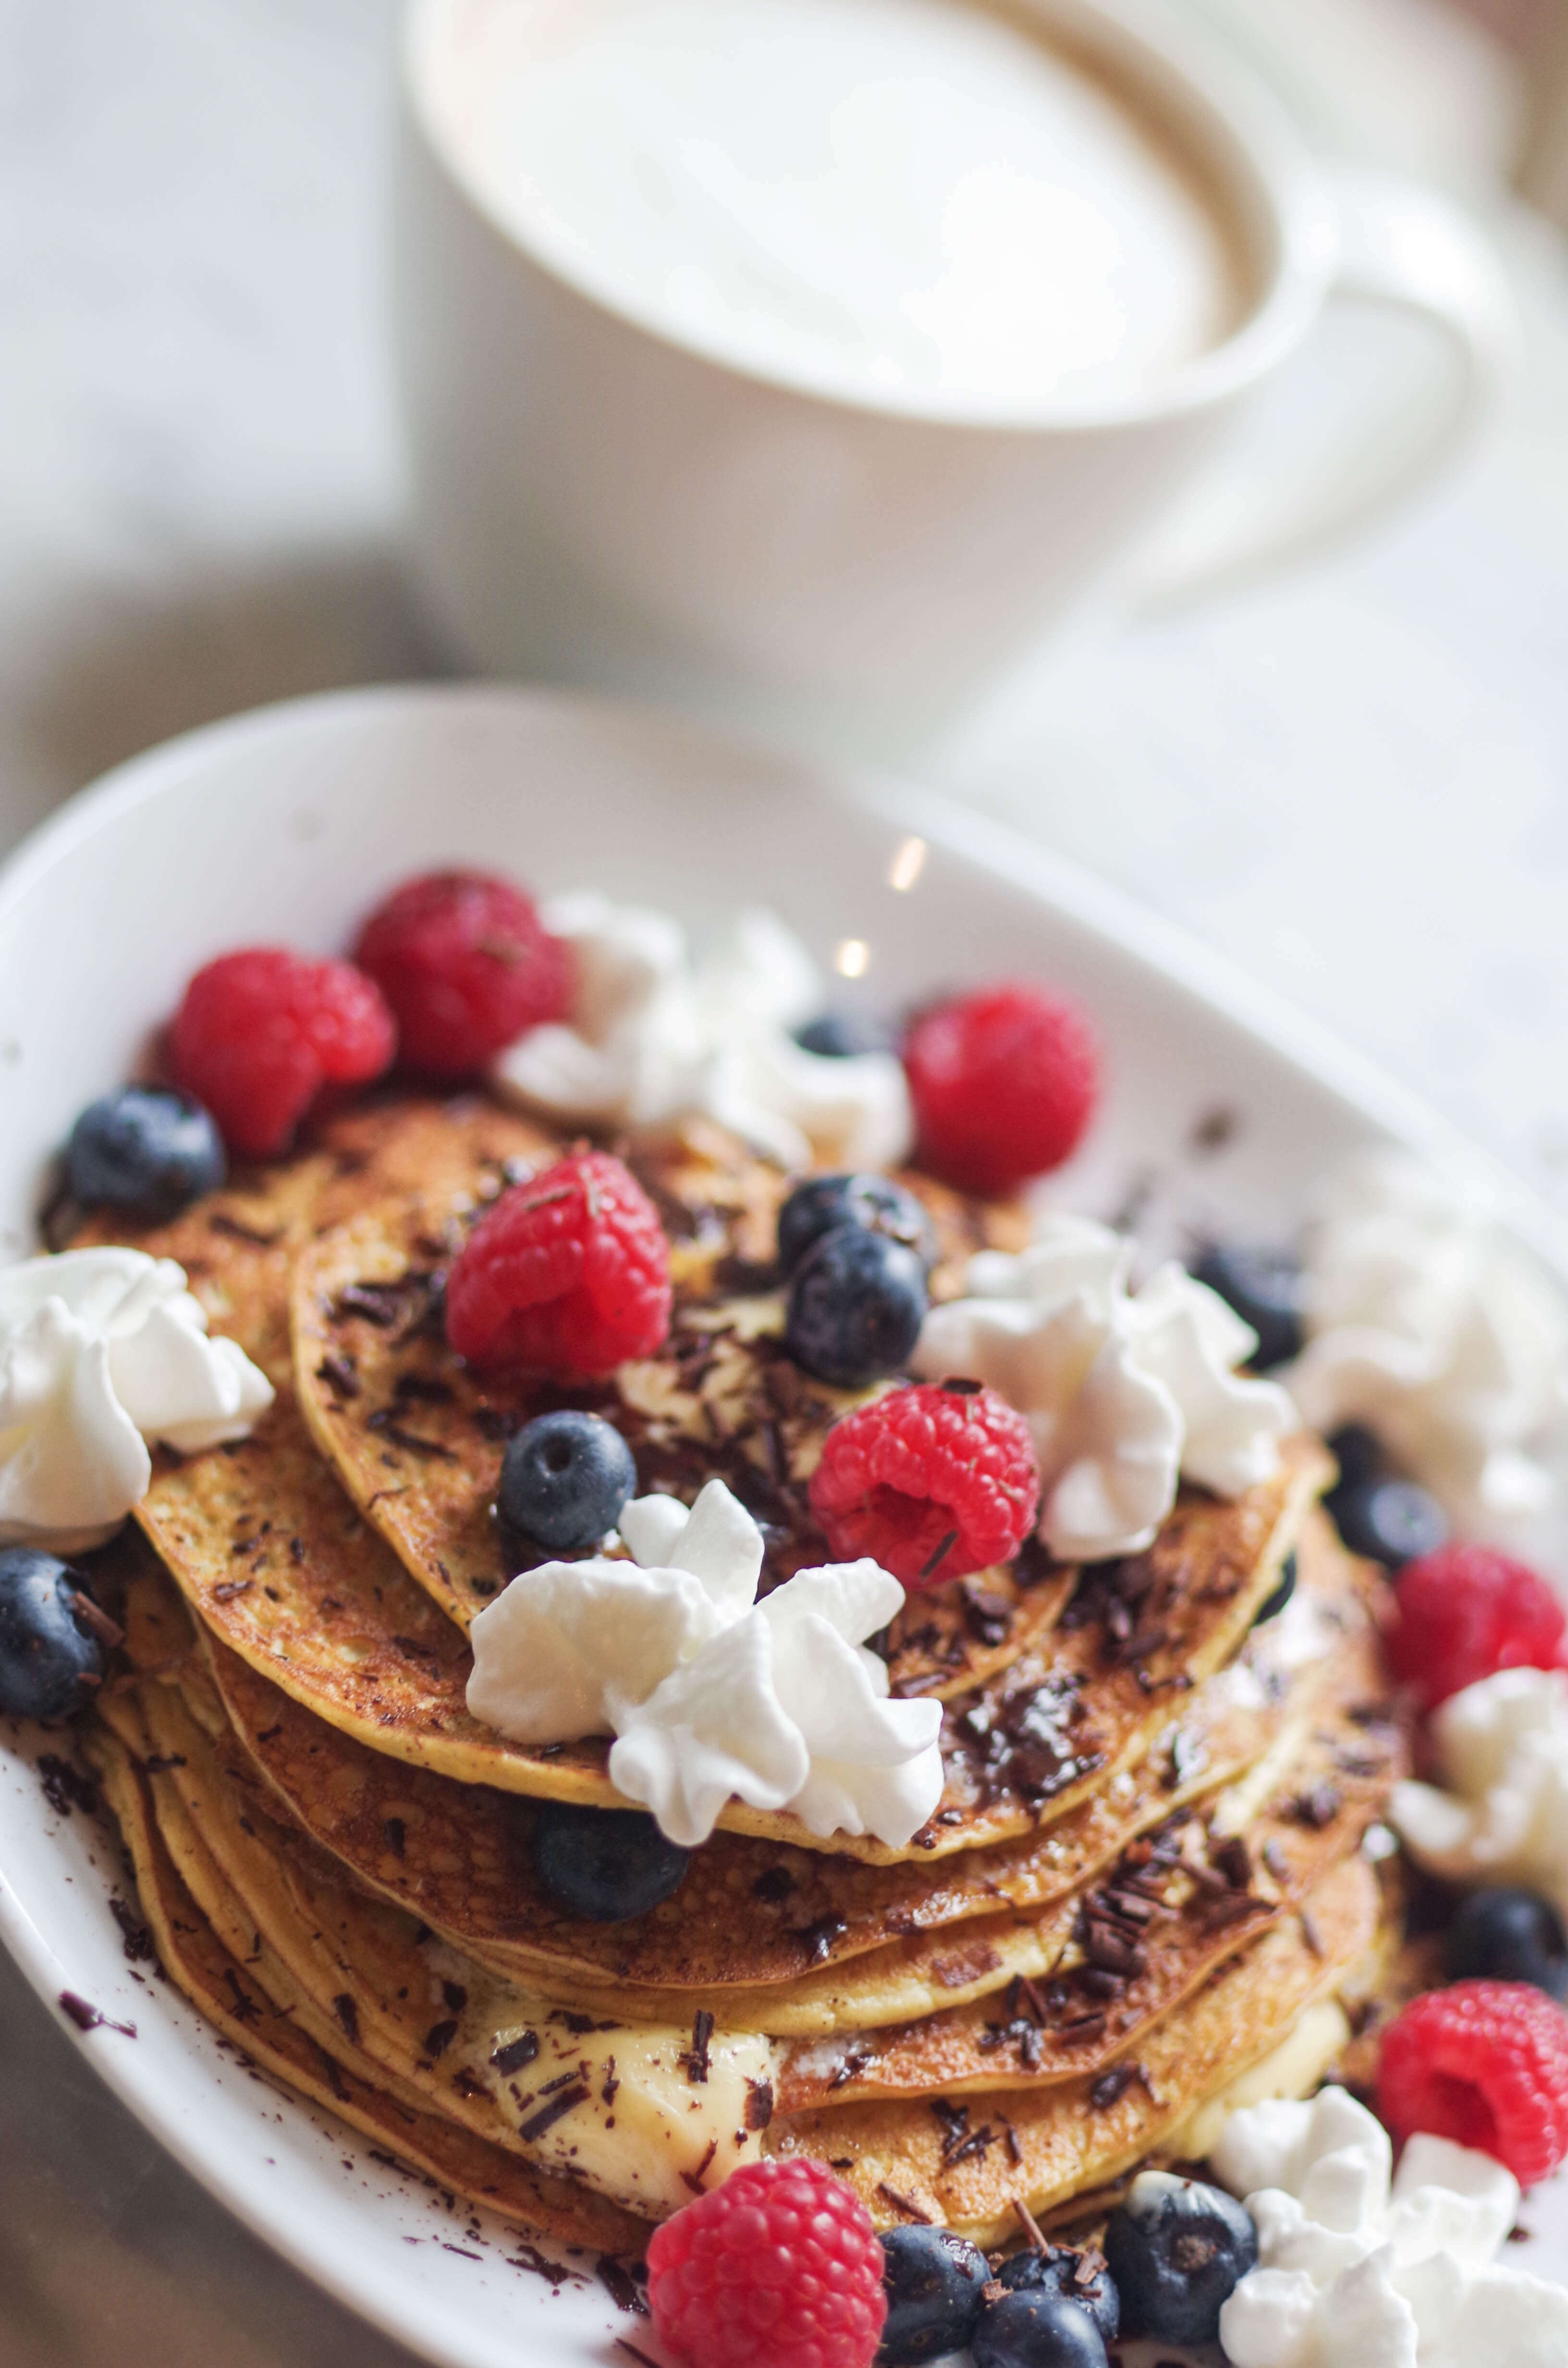 No Carb Pancake Recipe